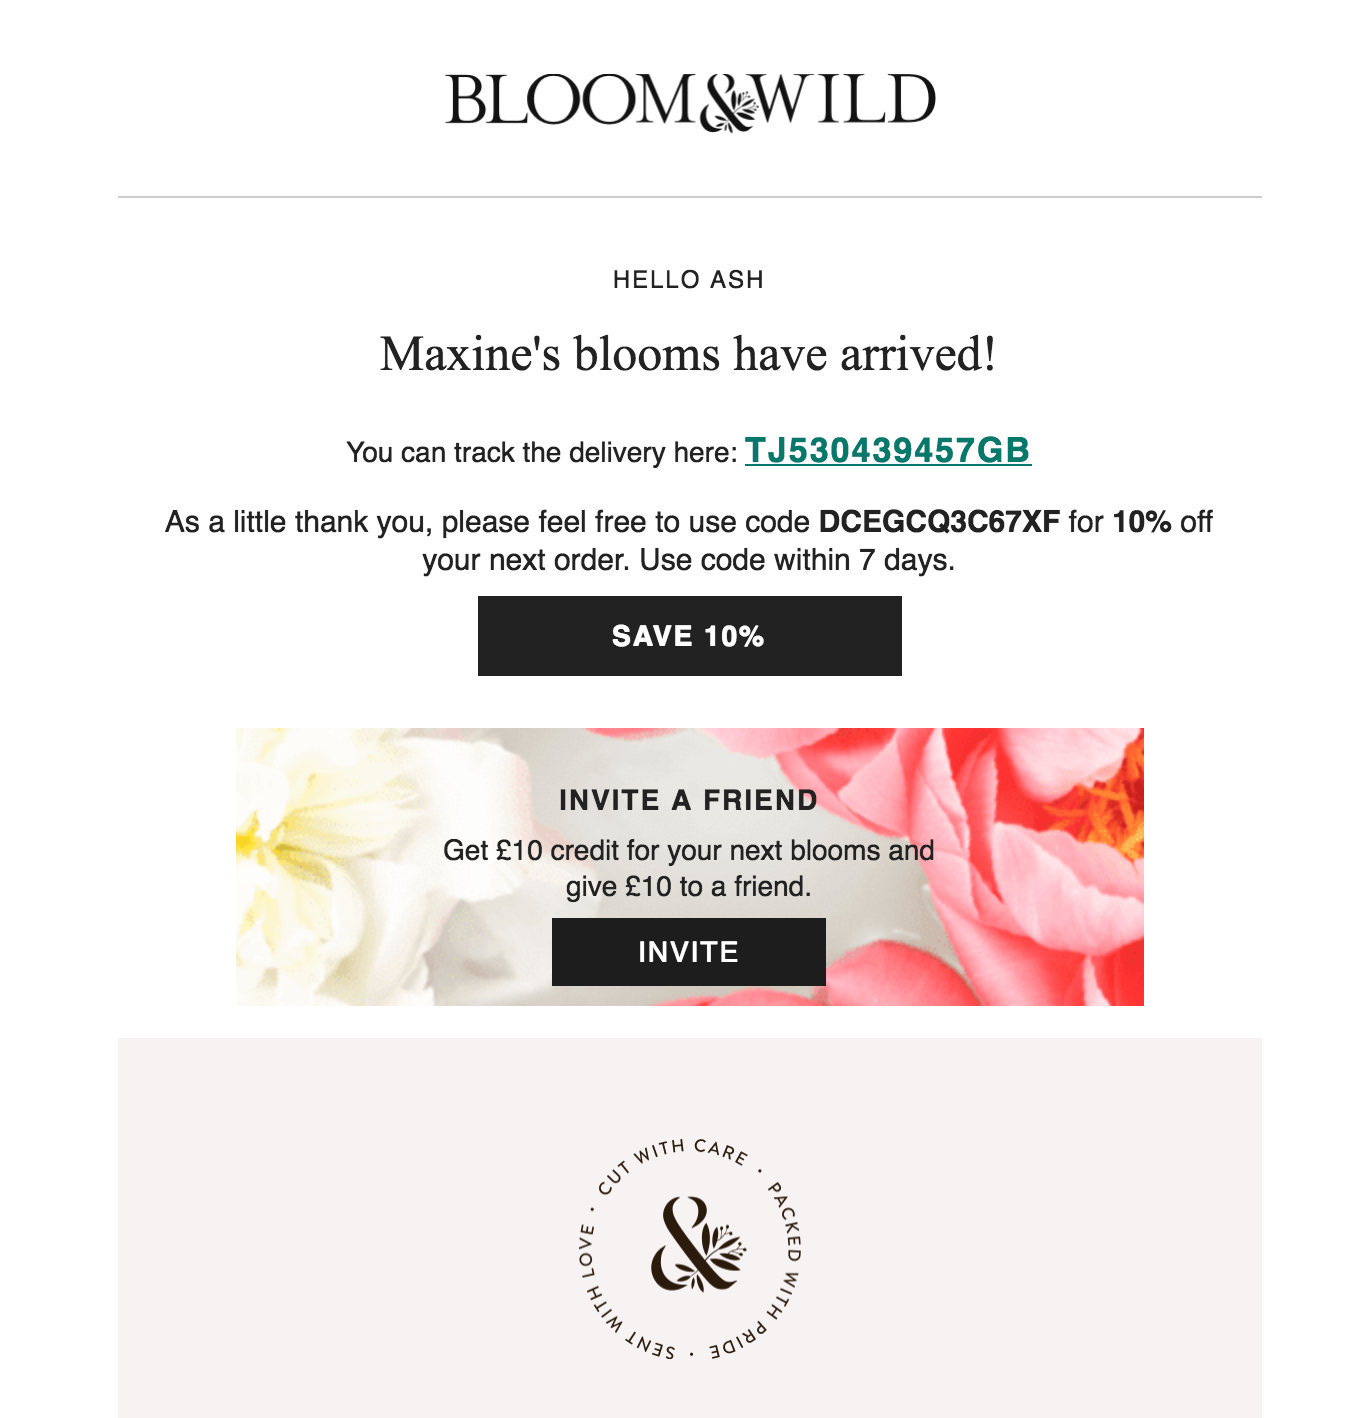 Screenshot showing an email by Bloom & Wild